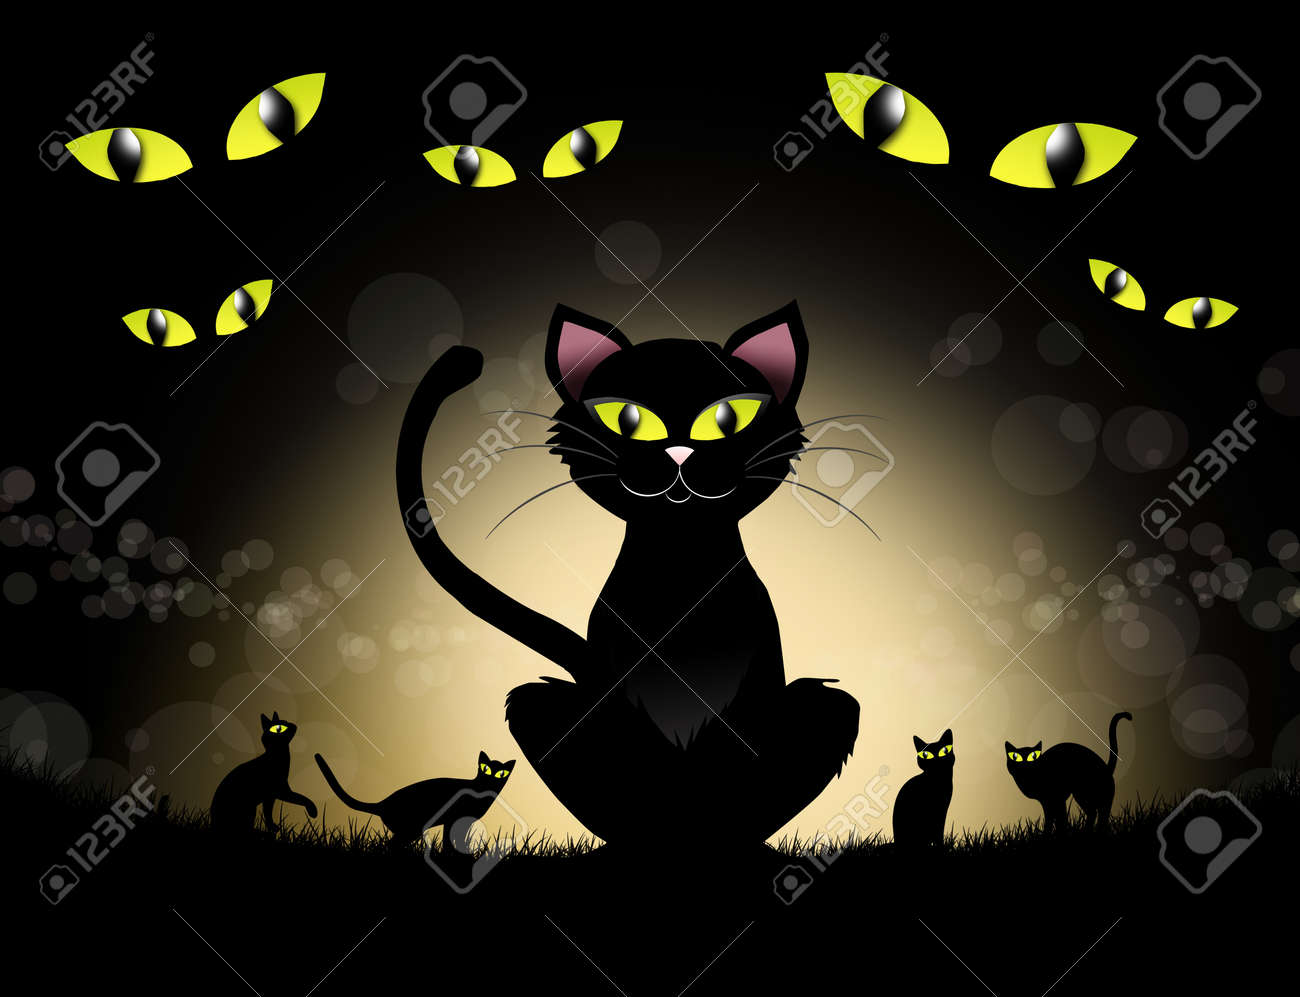 Black Cat Of Halloween Stock Photo, Picture And Royalty Free Image ...